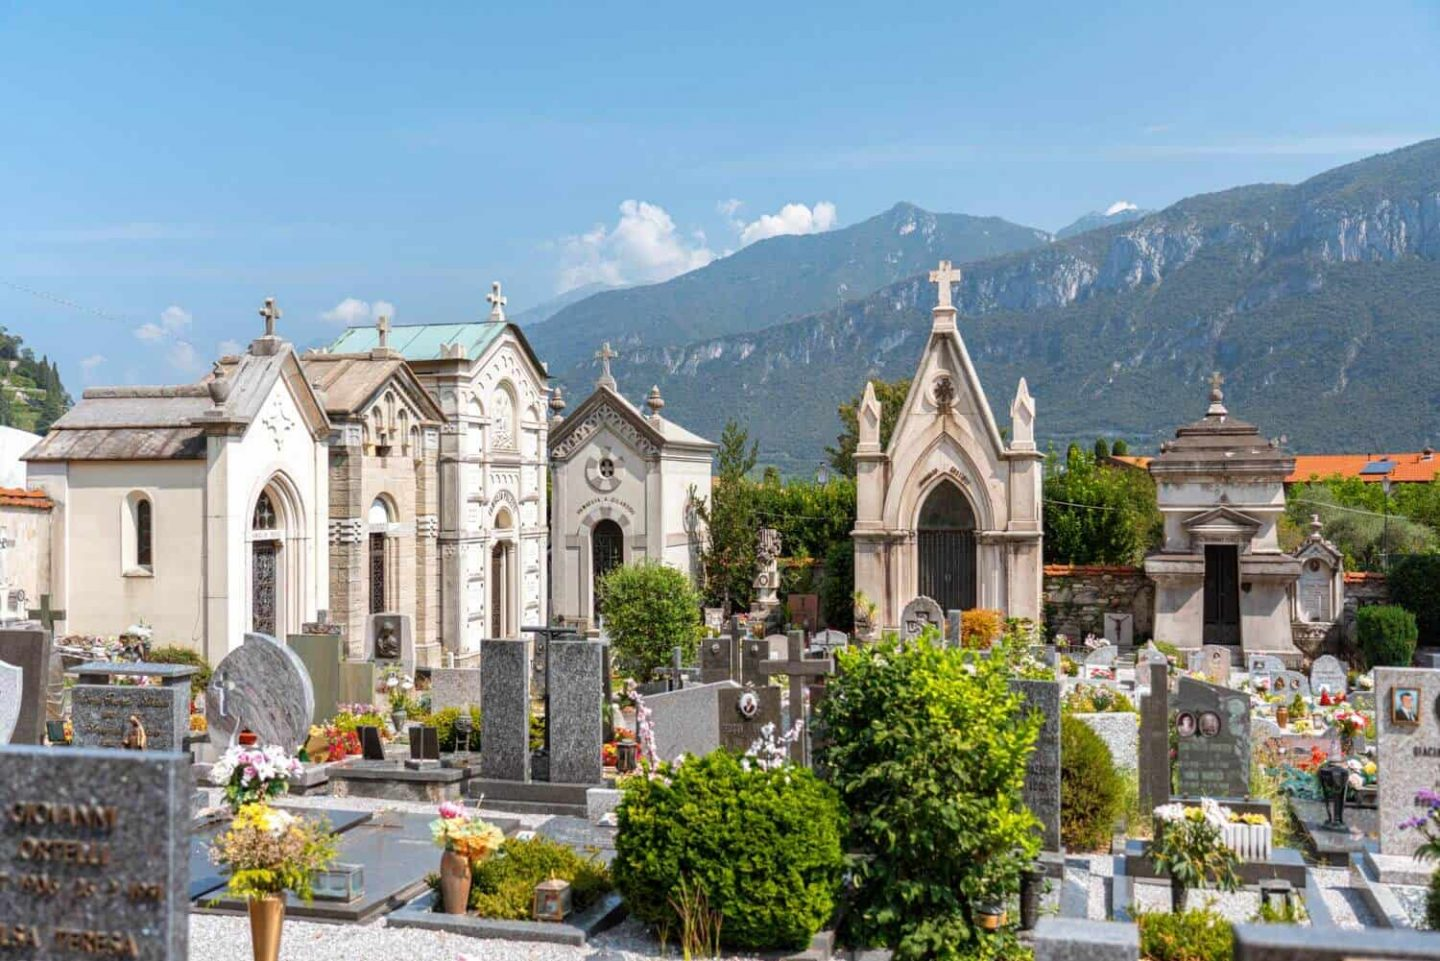 Beautiful cimitero del borgo with mountainous backdrop in Pescallo, Bellagio, Lake Como